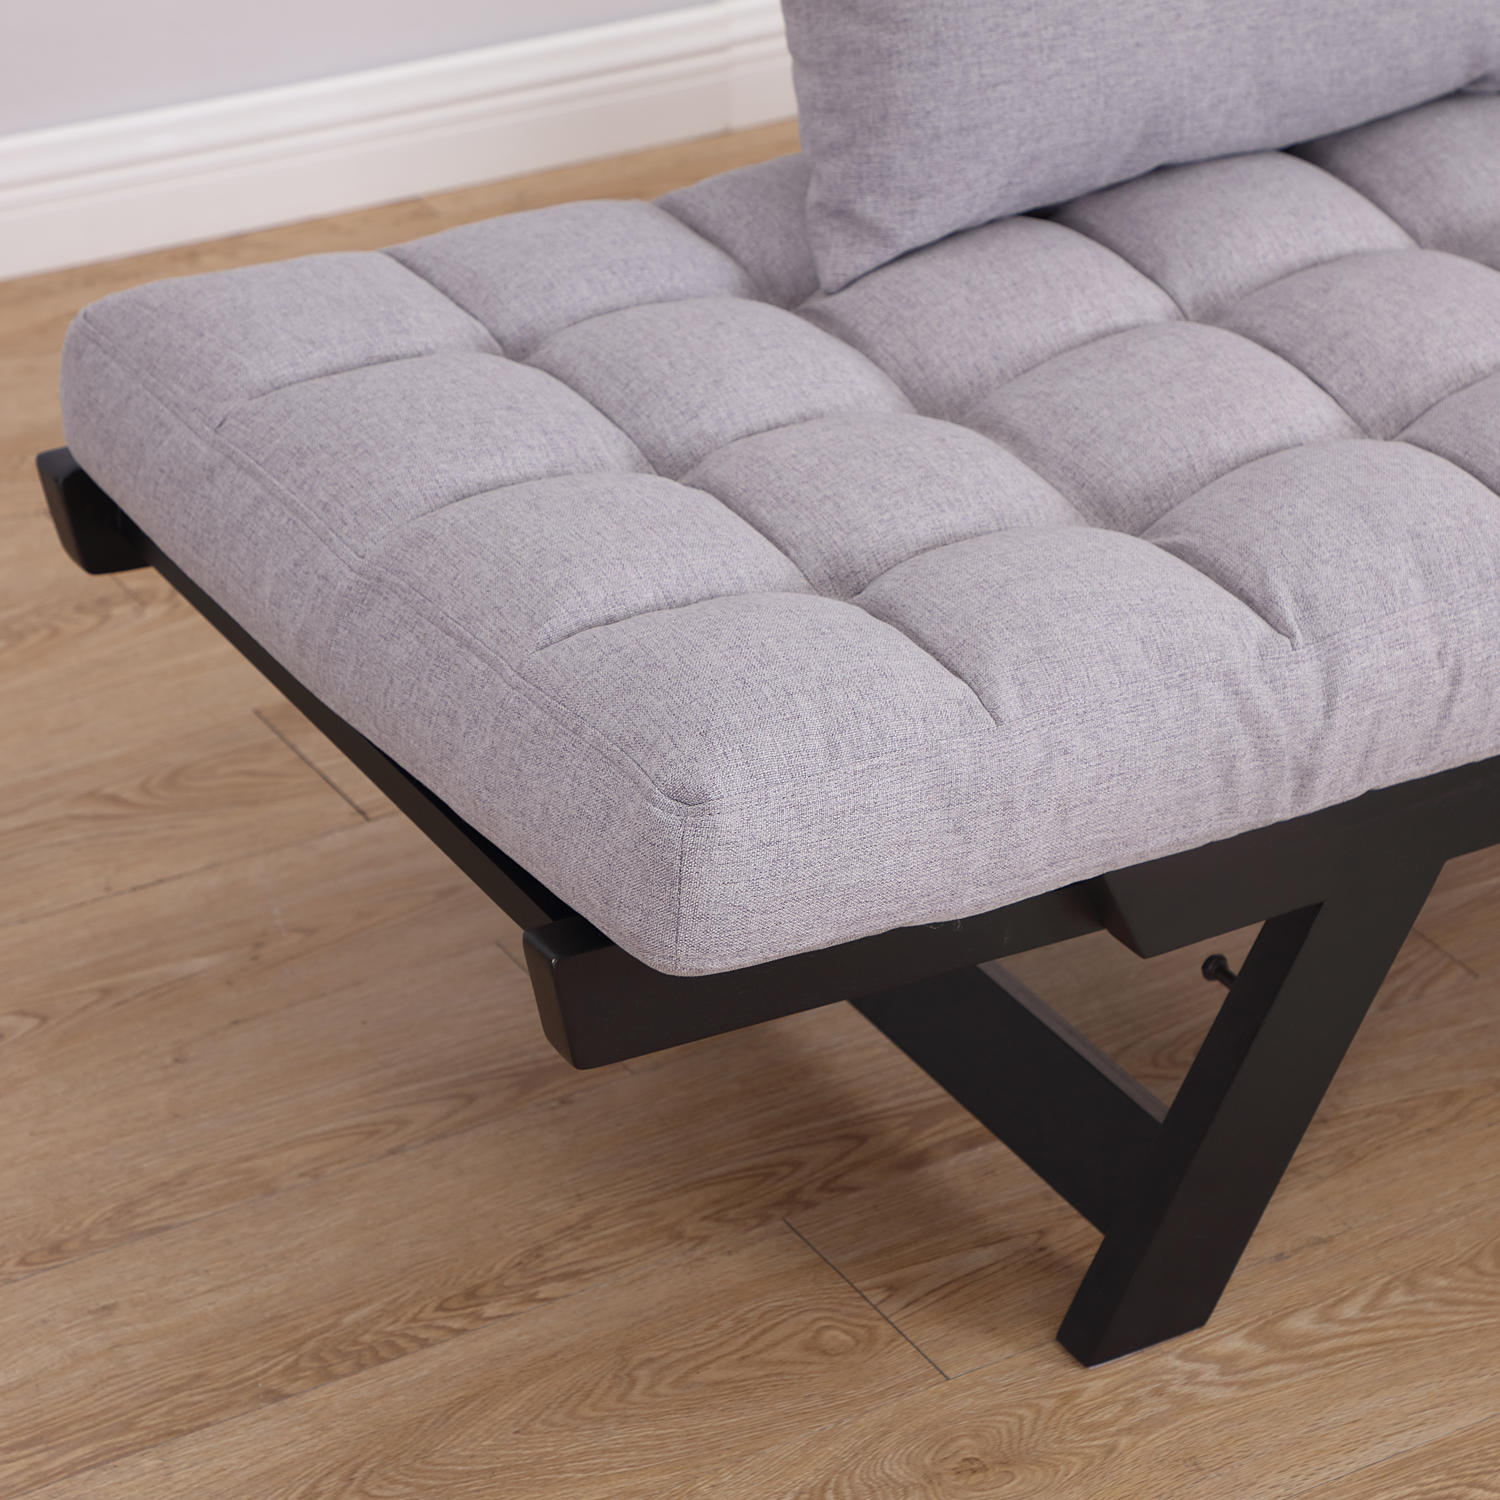 Convertible-Sofa-Bed-Sleeper-Couch-Chaise-Lounge-Chair-Adjustable-Padded-Pillow thumbnail 35